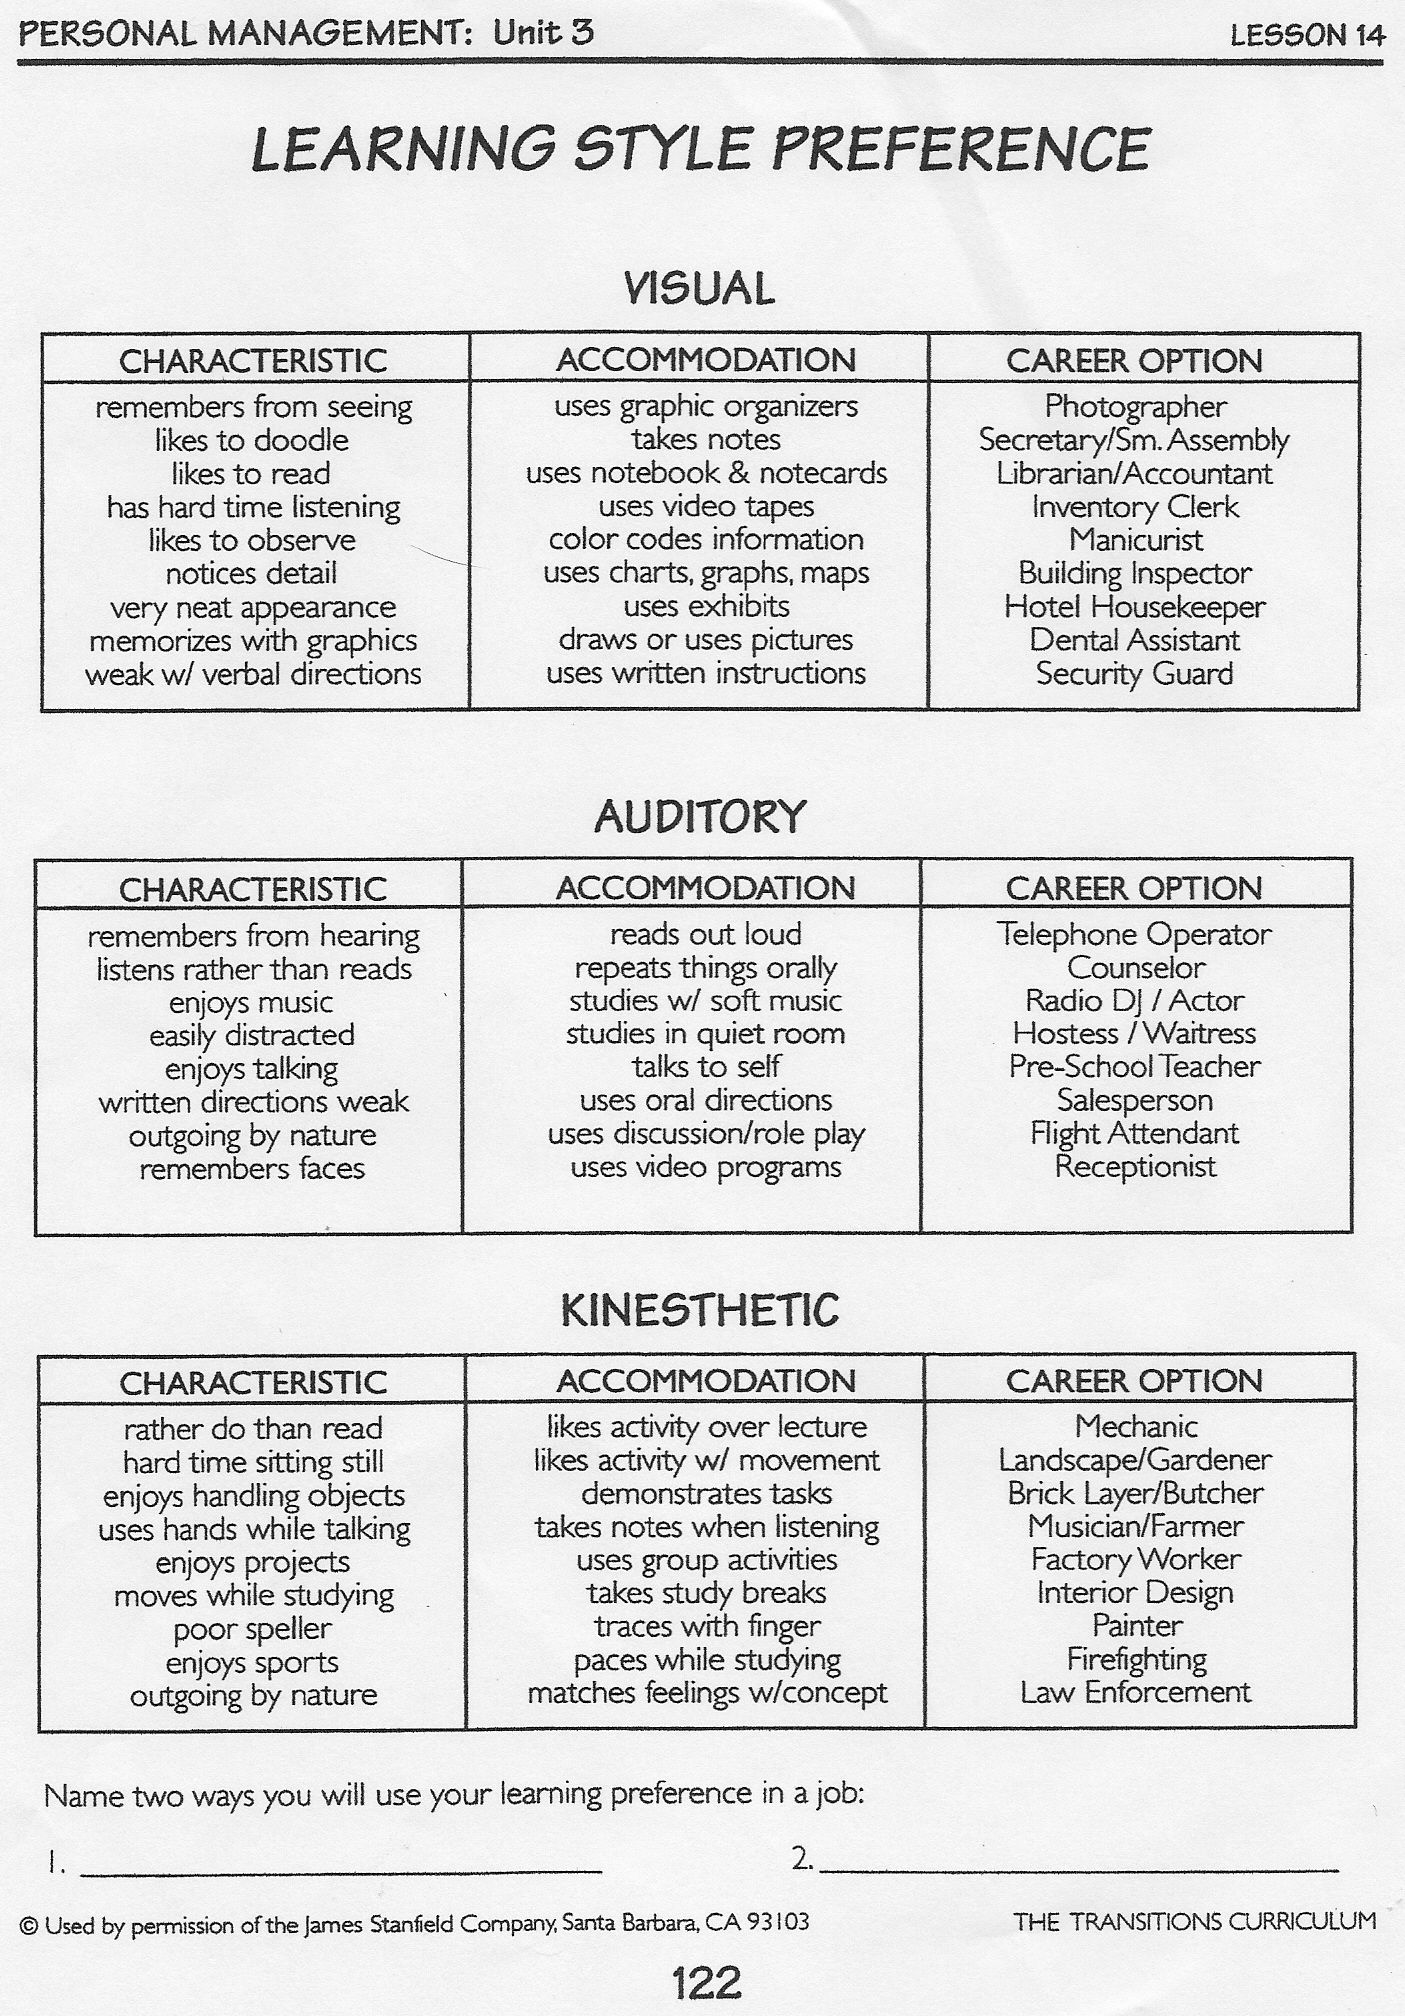 Jobs Clusters For Learning Styles With Images